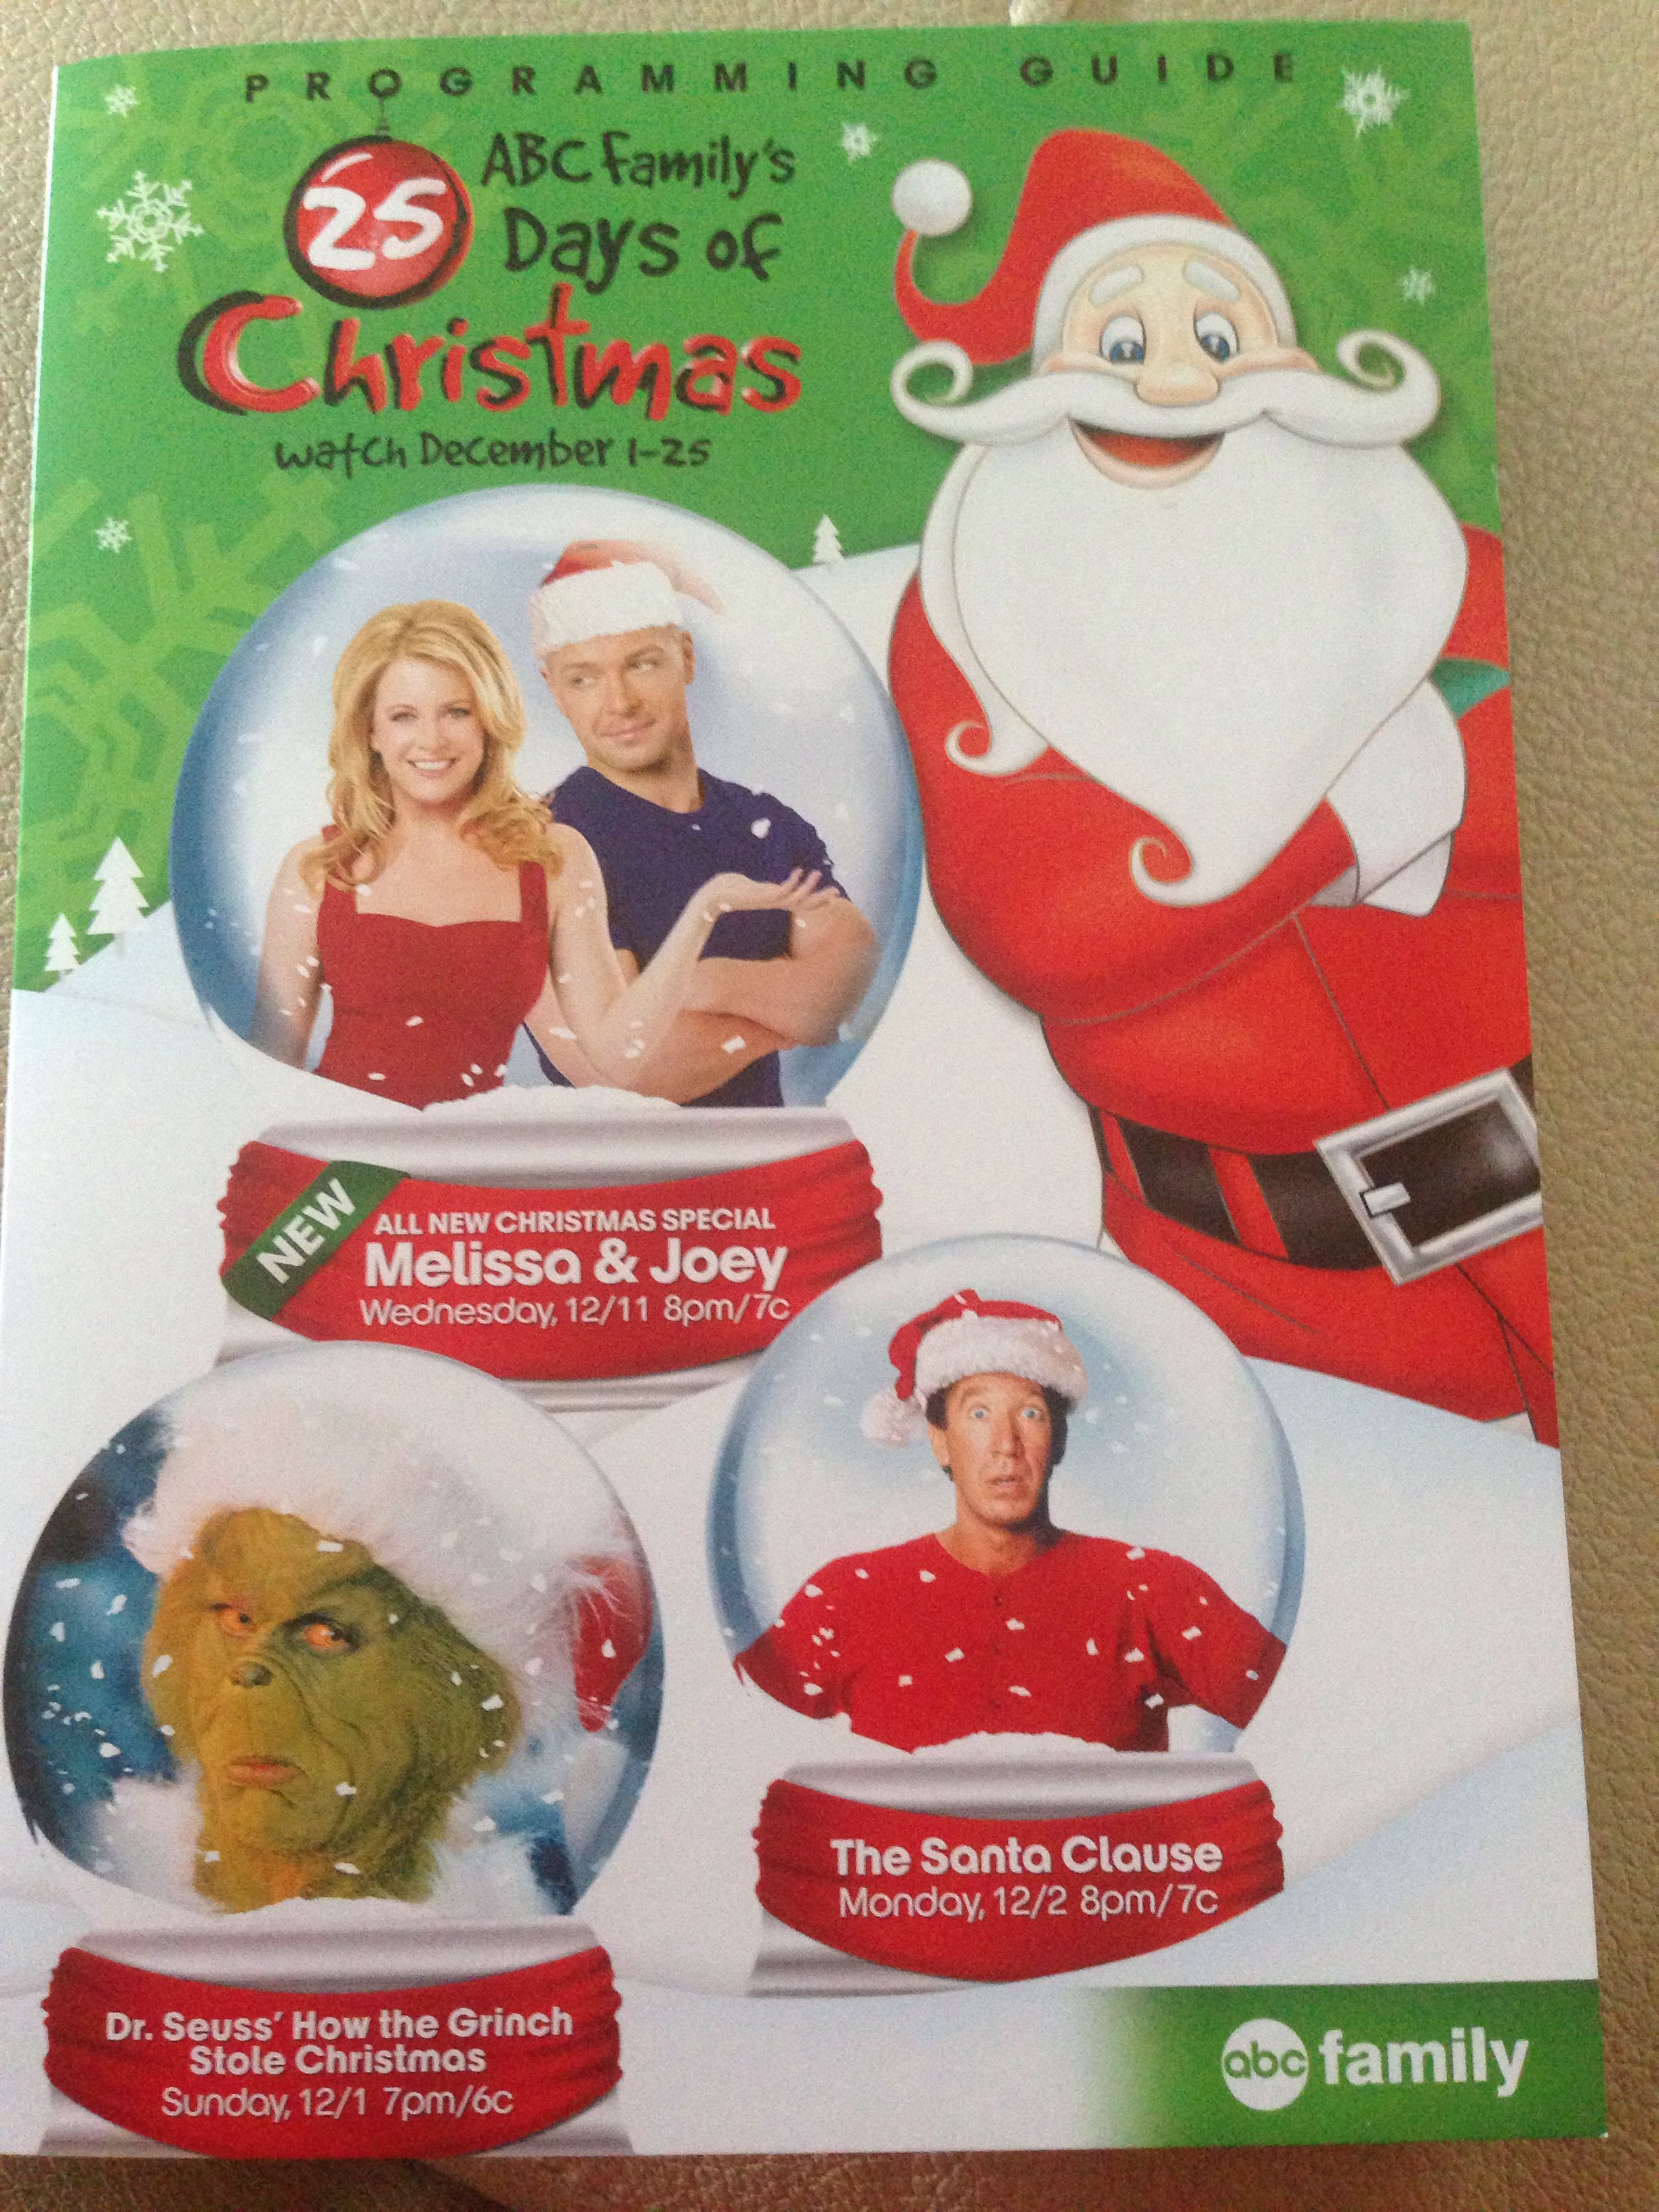 Abc Family 25 Days Of Christmas.Abc Family 25 Days Of Christmas Watch December 1 25 I Love